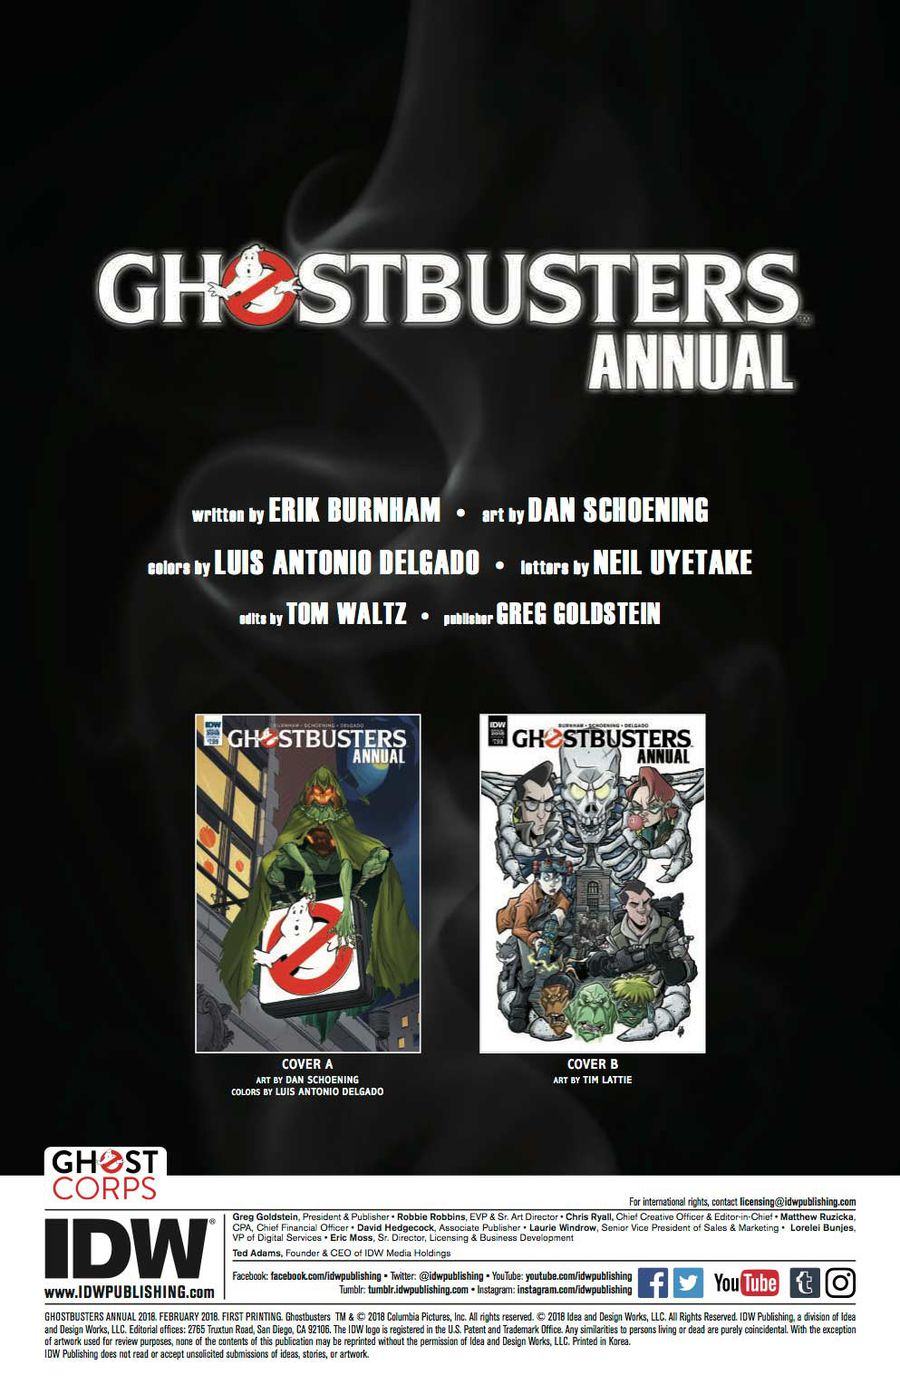 Ghostbusters Annual 2018 Page 1